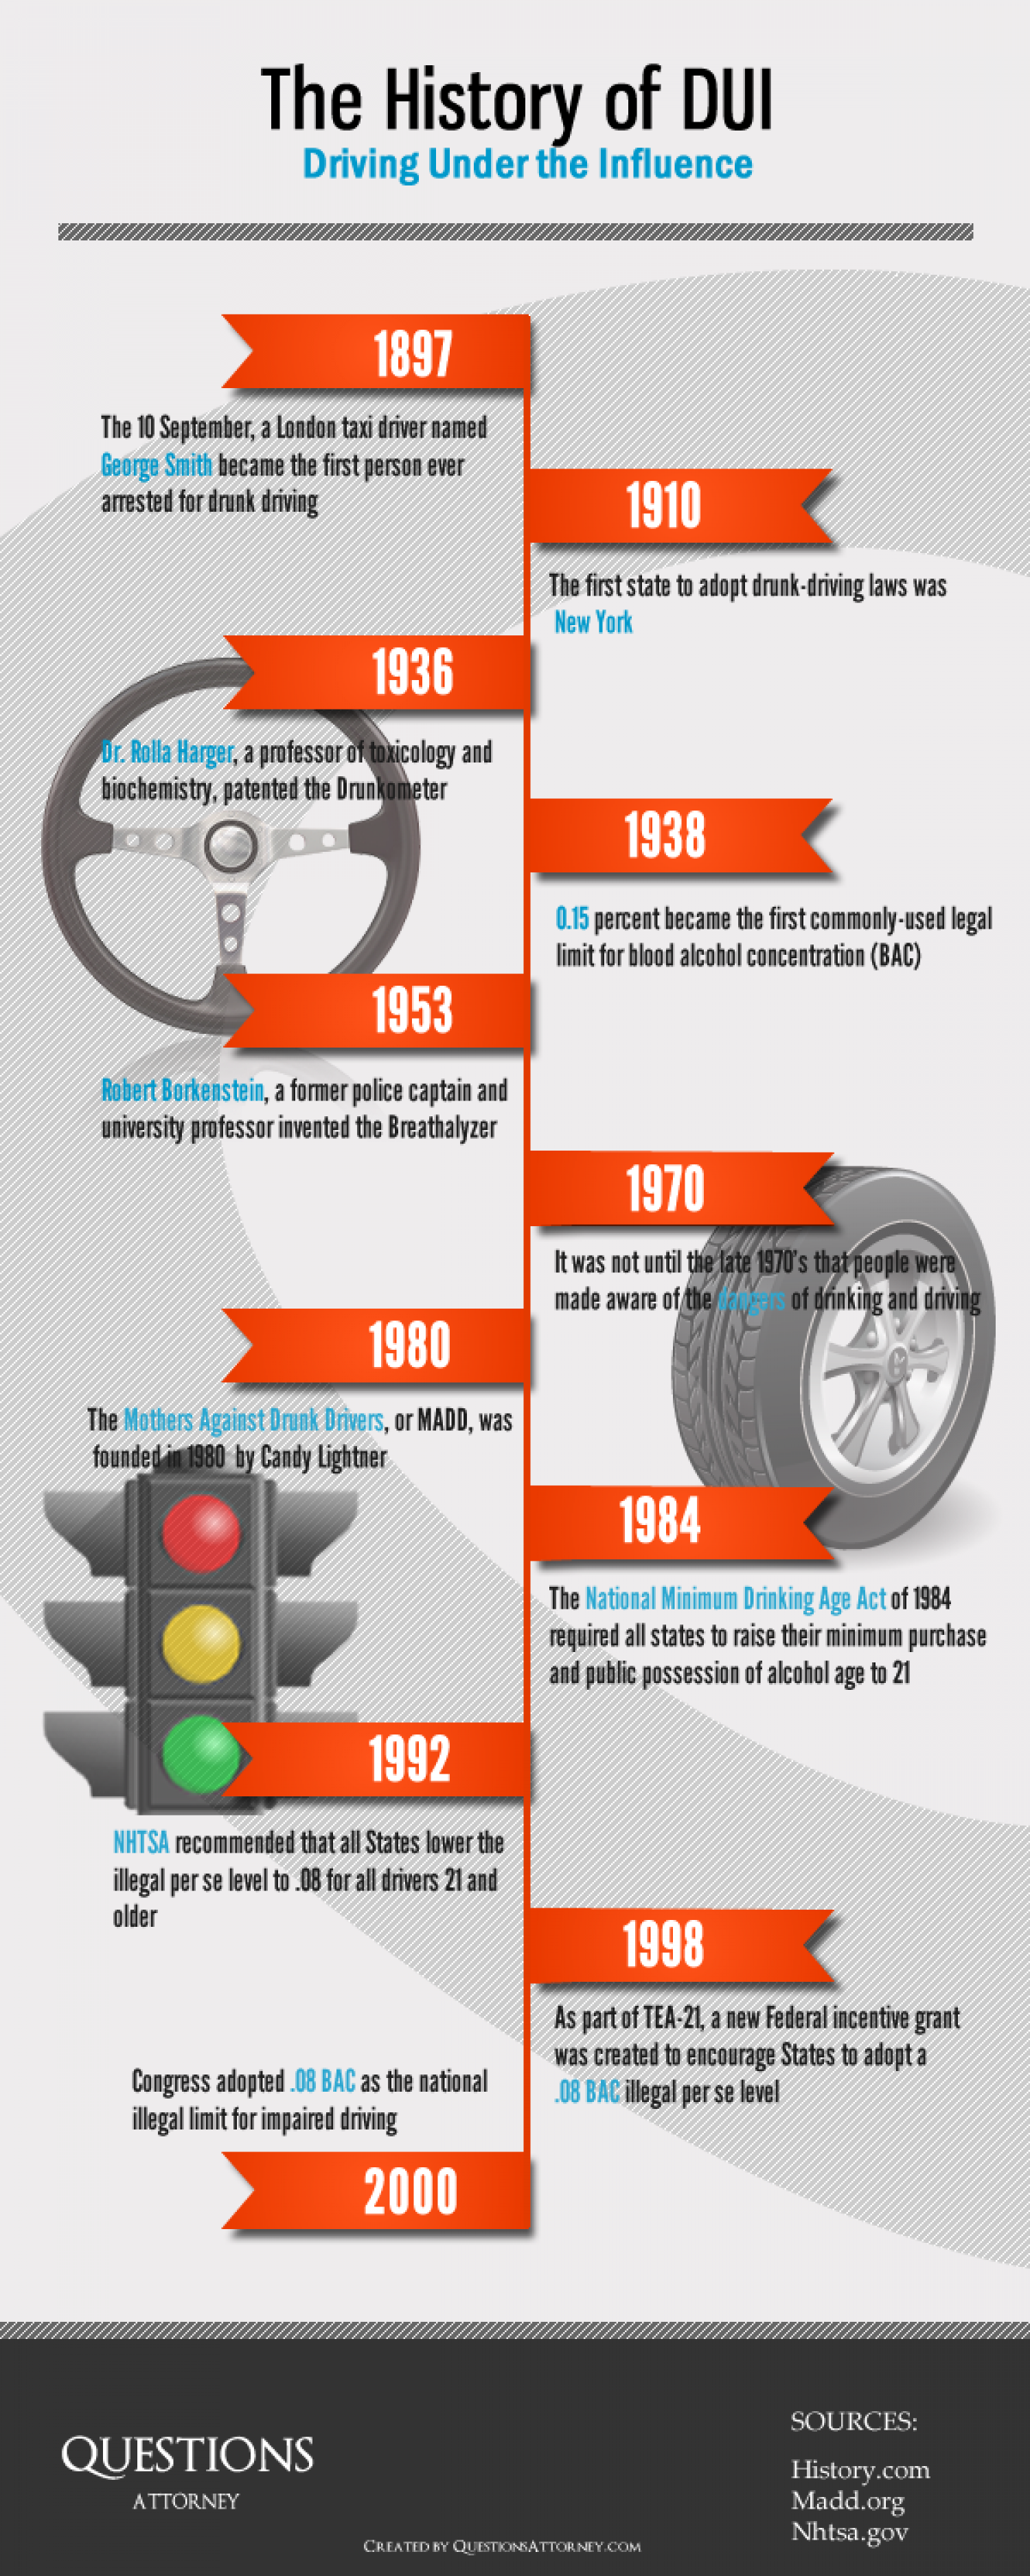 DUI and Drunk Driving History Infographic